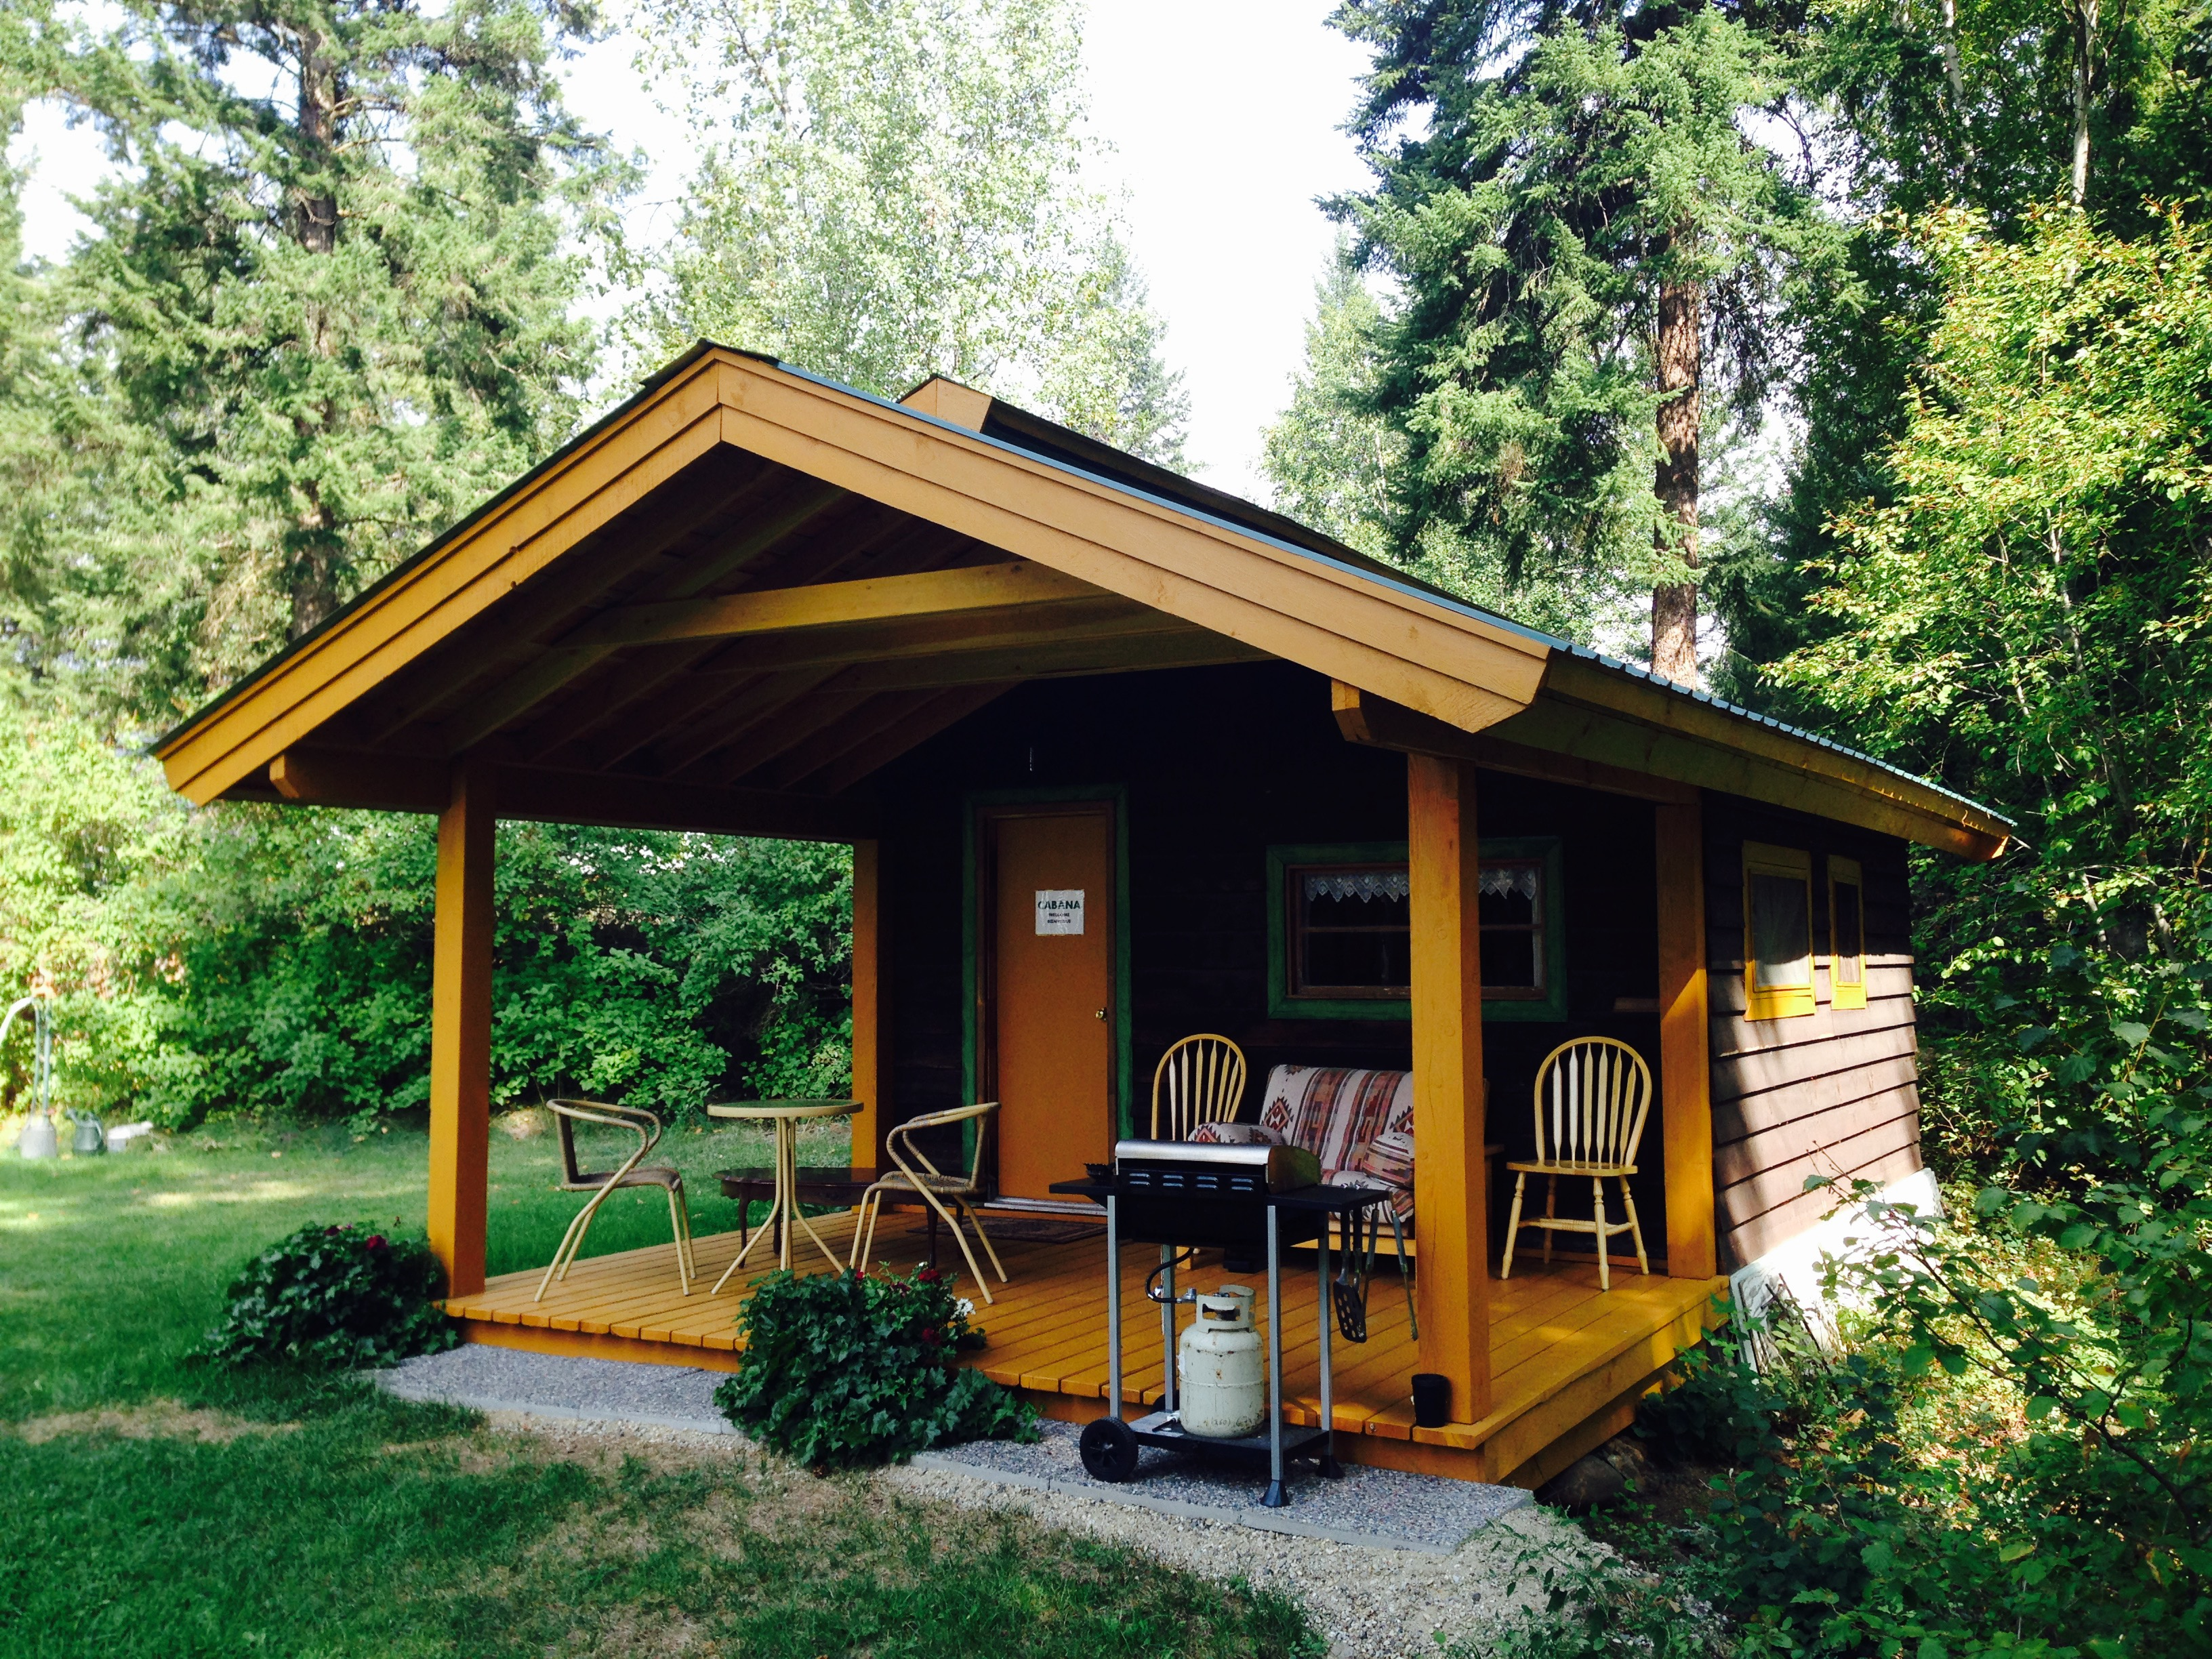 stays a cabin devon travel georgia the getaway romantic glamping stay all cabins show of week cool south lifestyle brownscombe in